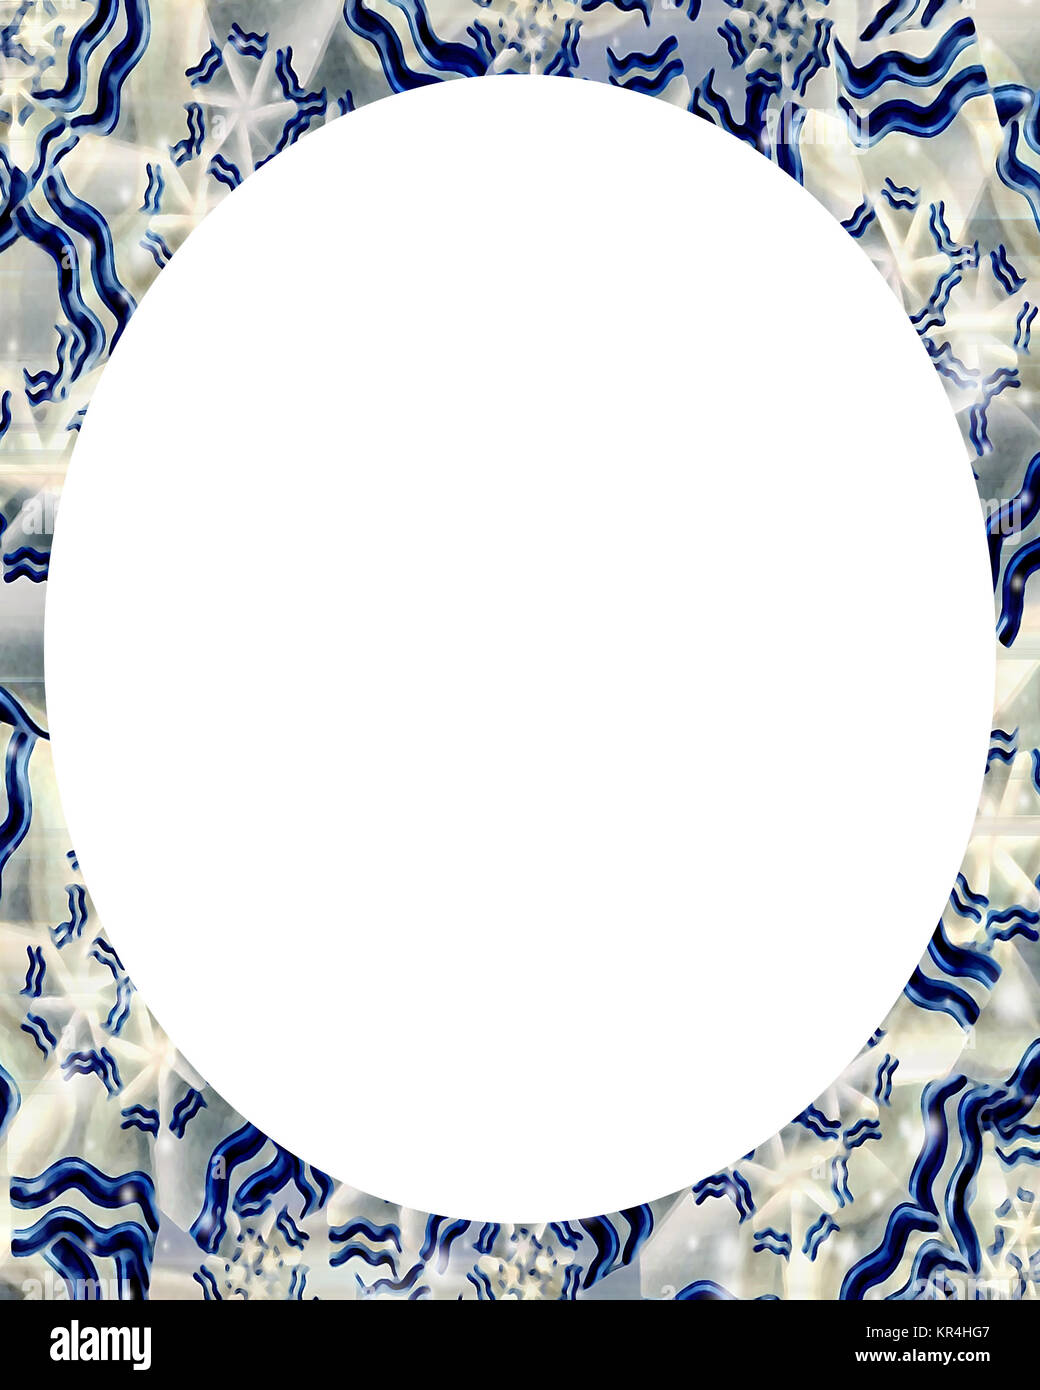 White Background with Decorated Borders - Stock Image